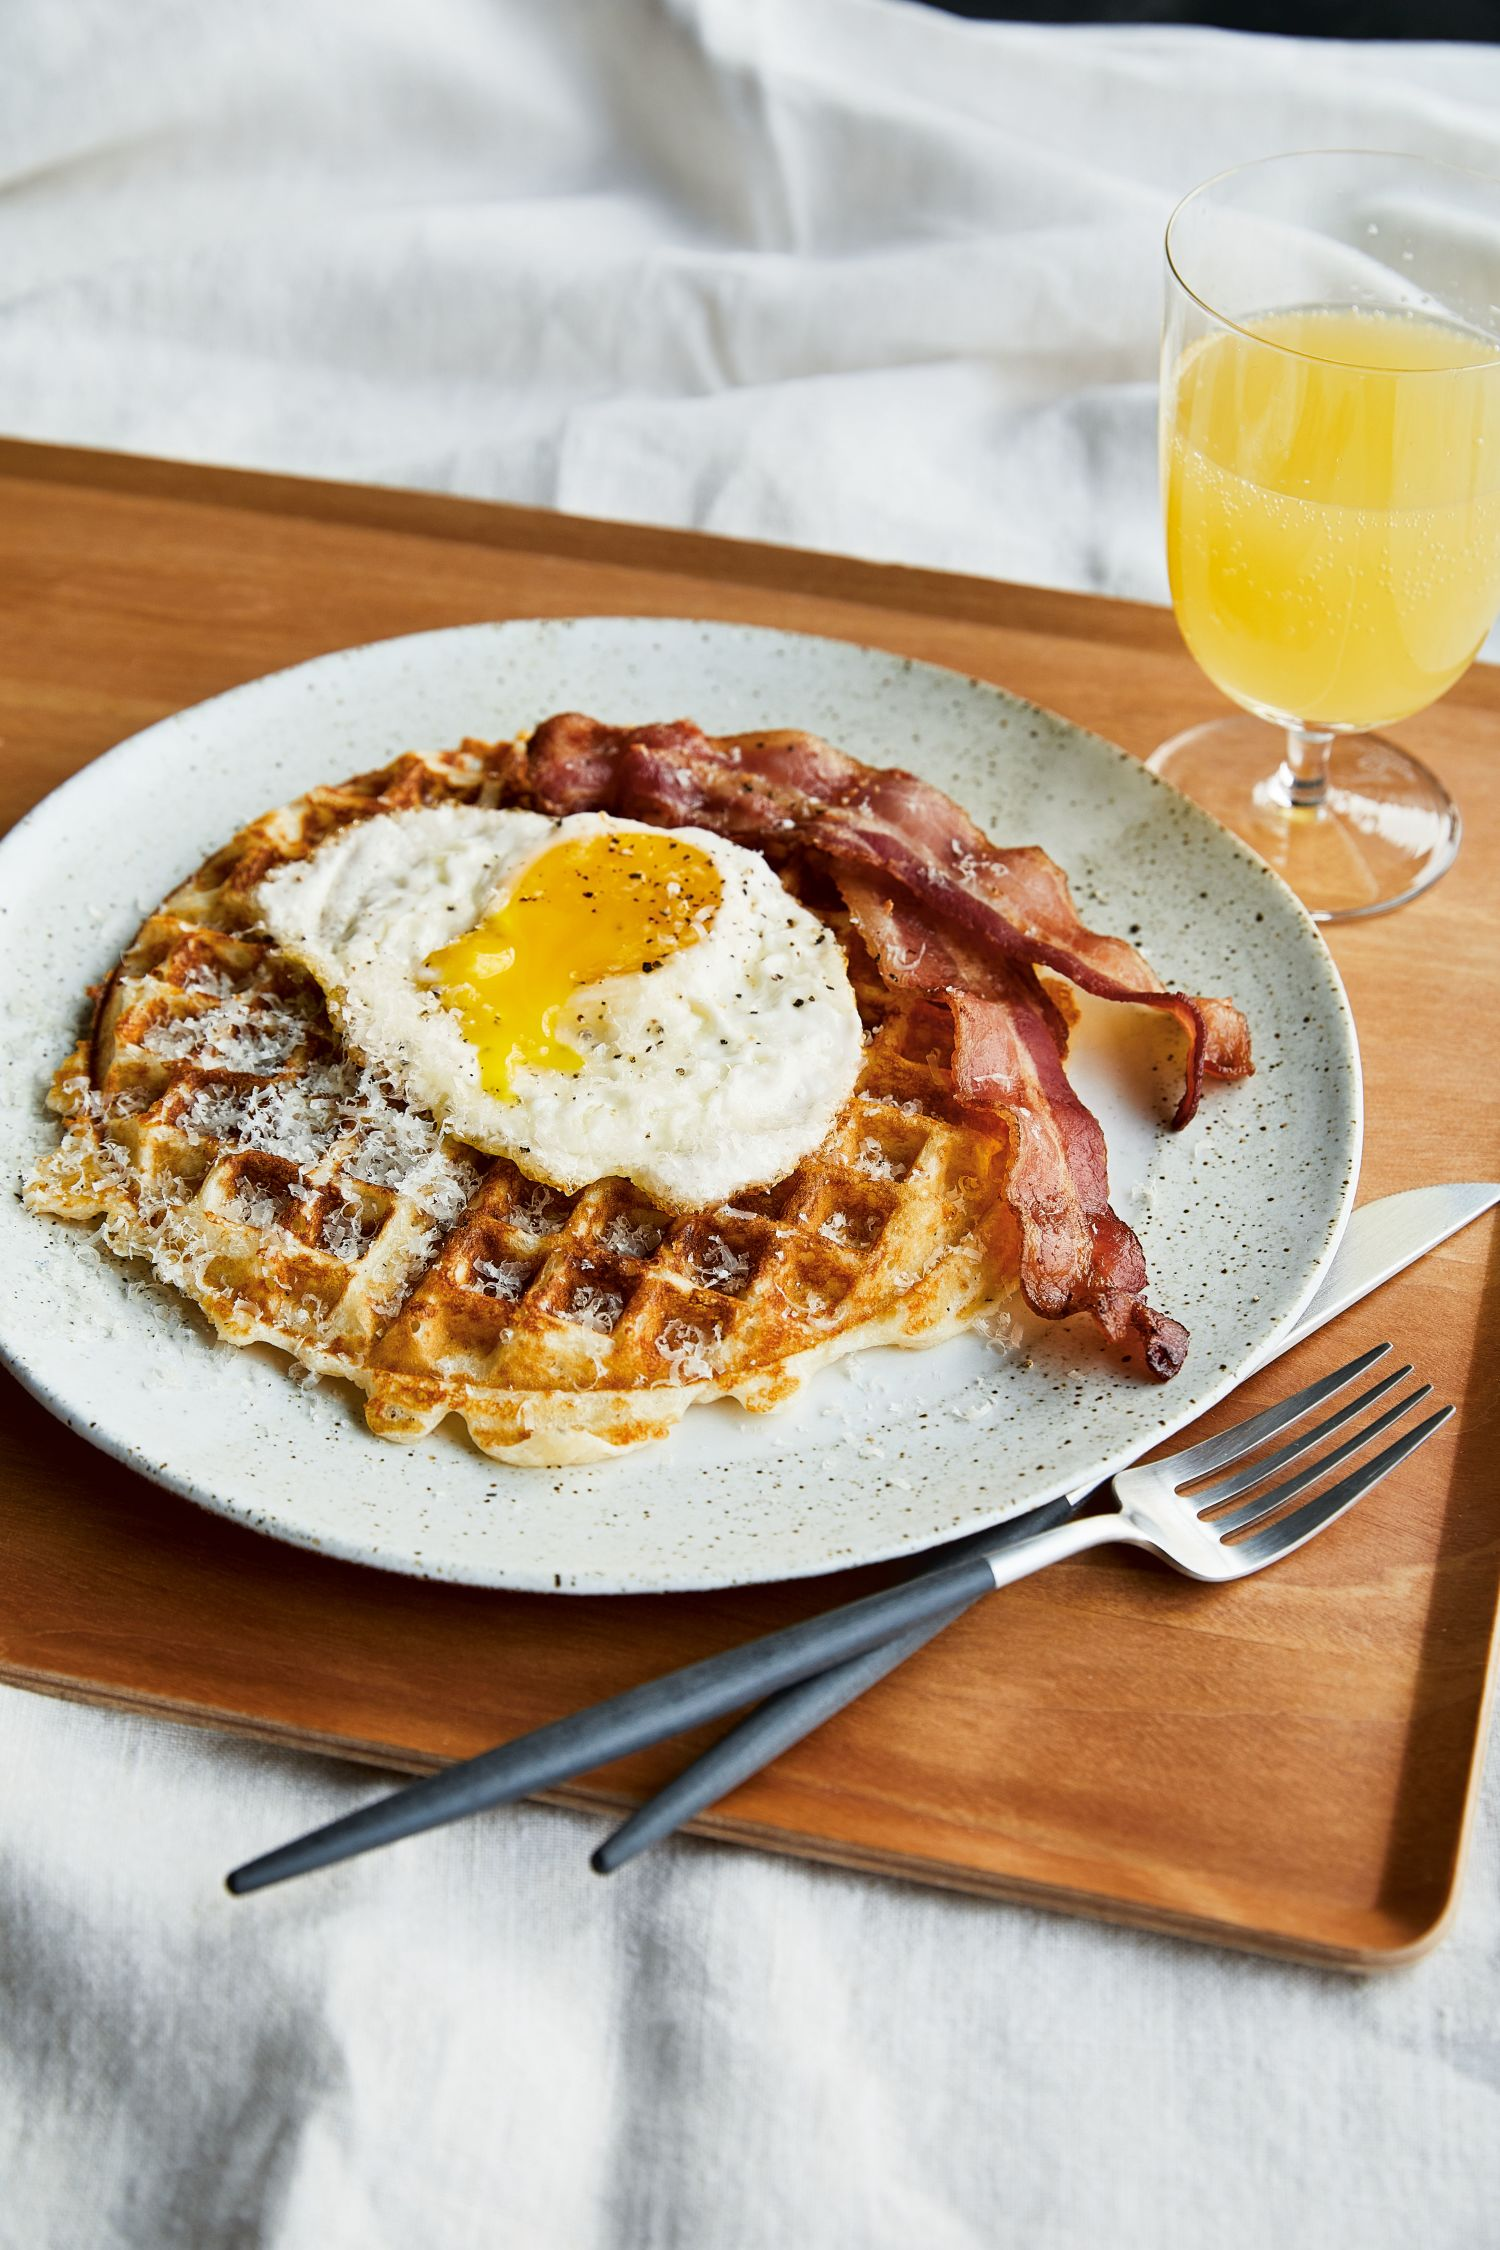 The Surprising Ingredient Chrissy Teigan Adds to Her Waffles